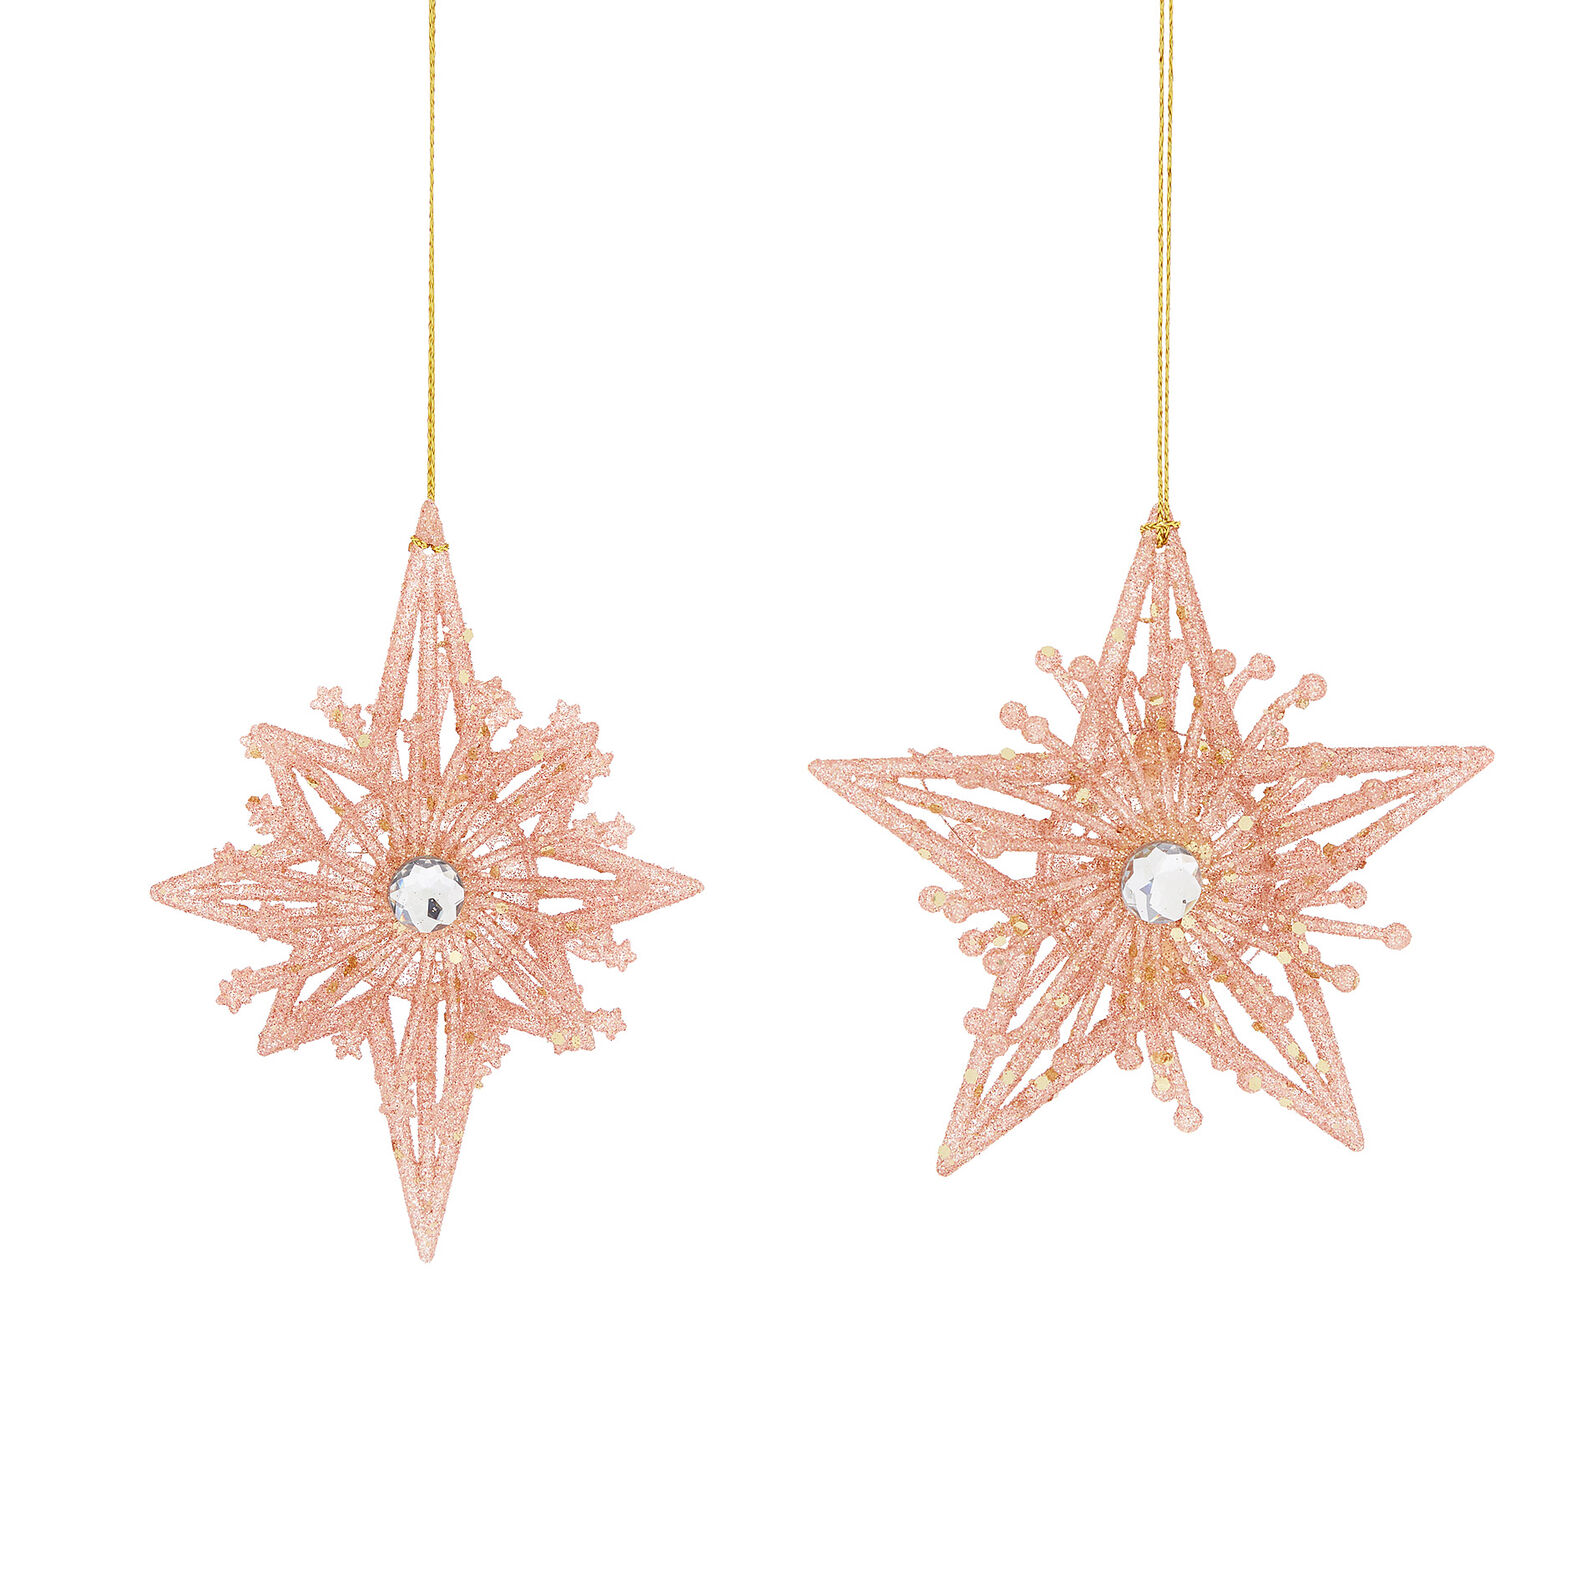 Assorted star decoration with glitter